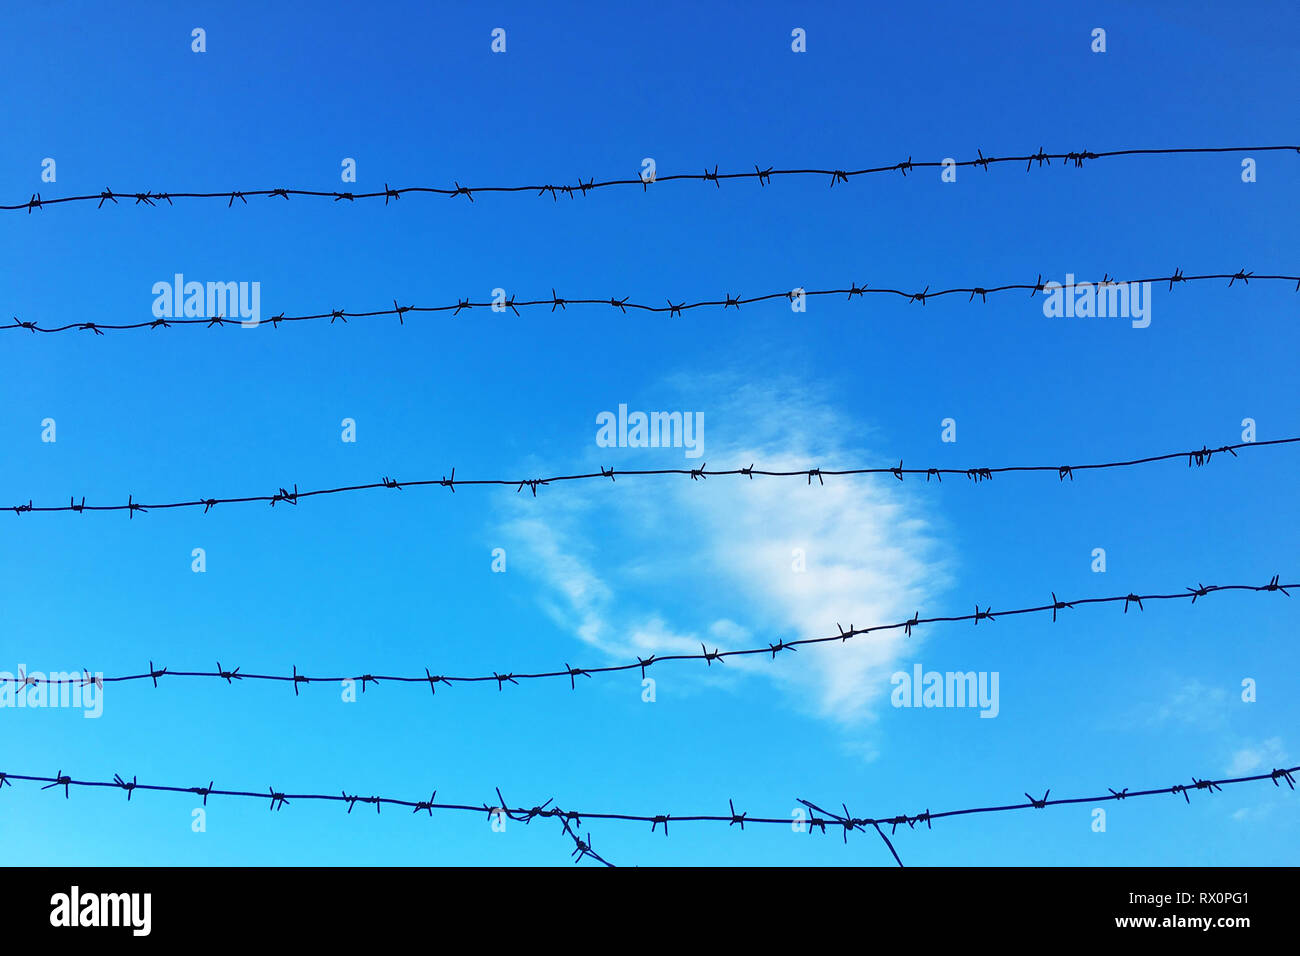 Wire mesh fence and a restricted area sign with blue sky background - Stock Image